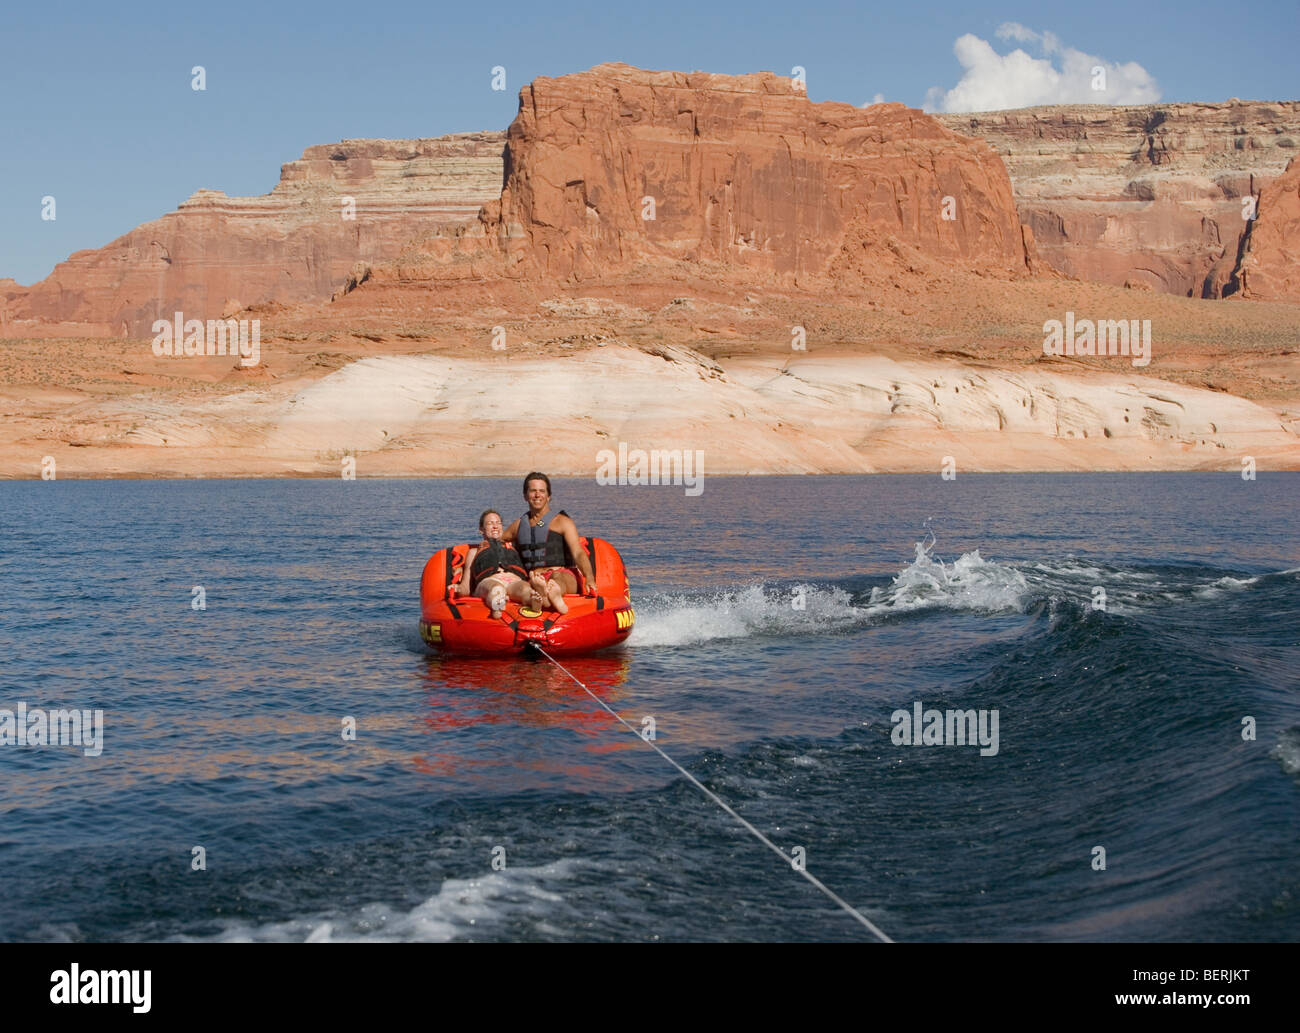 a couple rides on an inflatable tow while being towed behind a boat on lake Powel in Utah, USA. - Stock Image